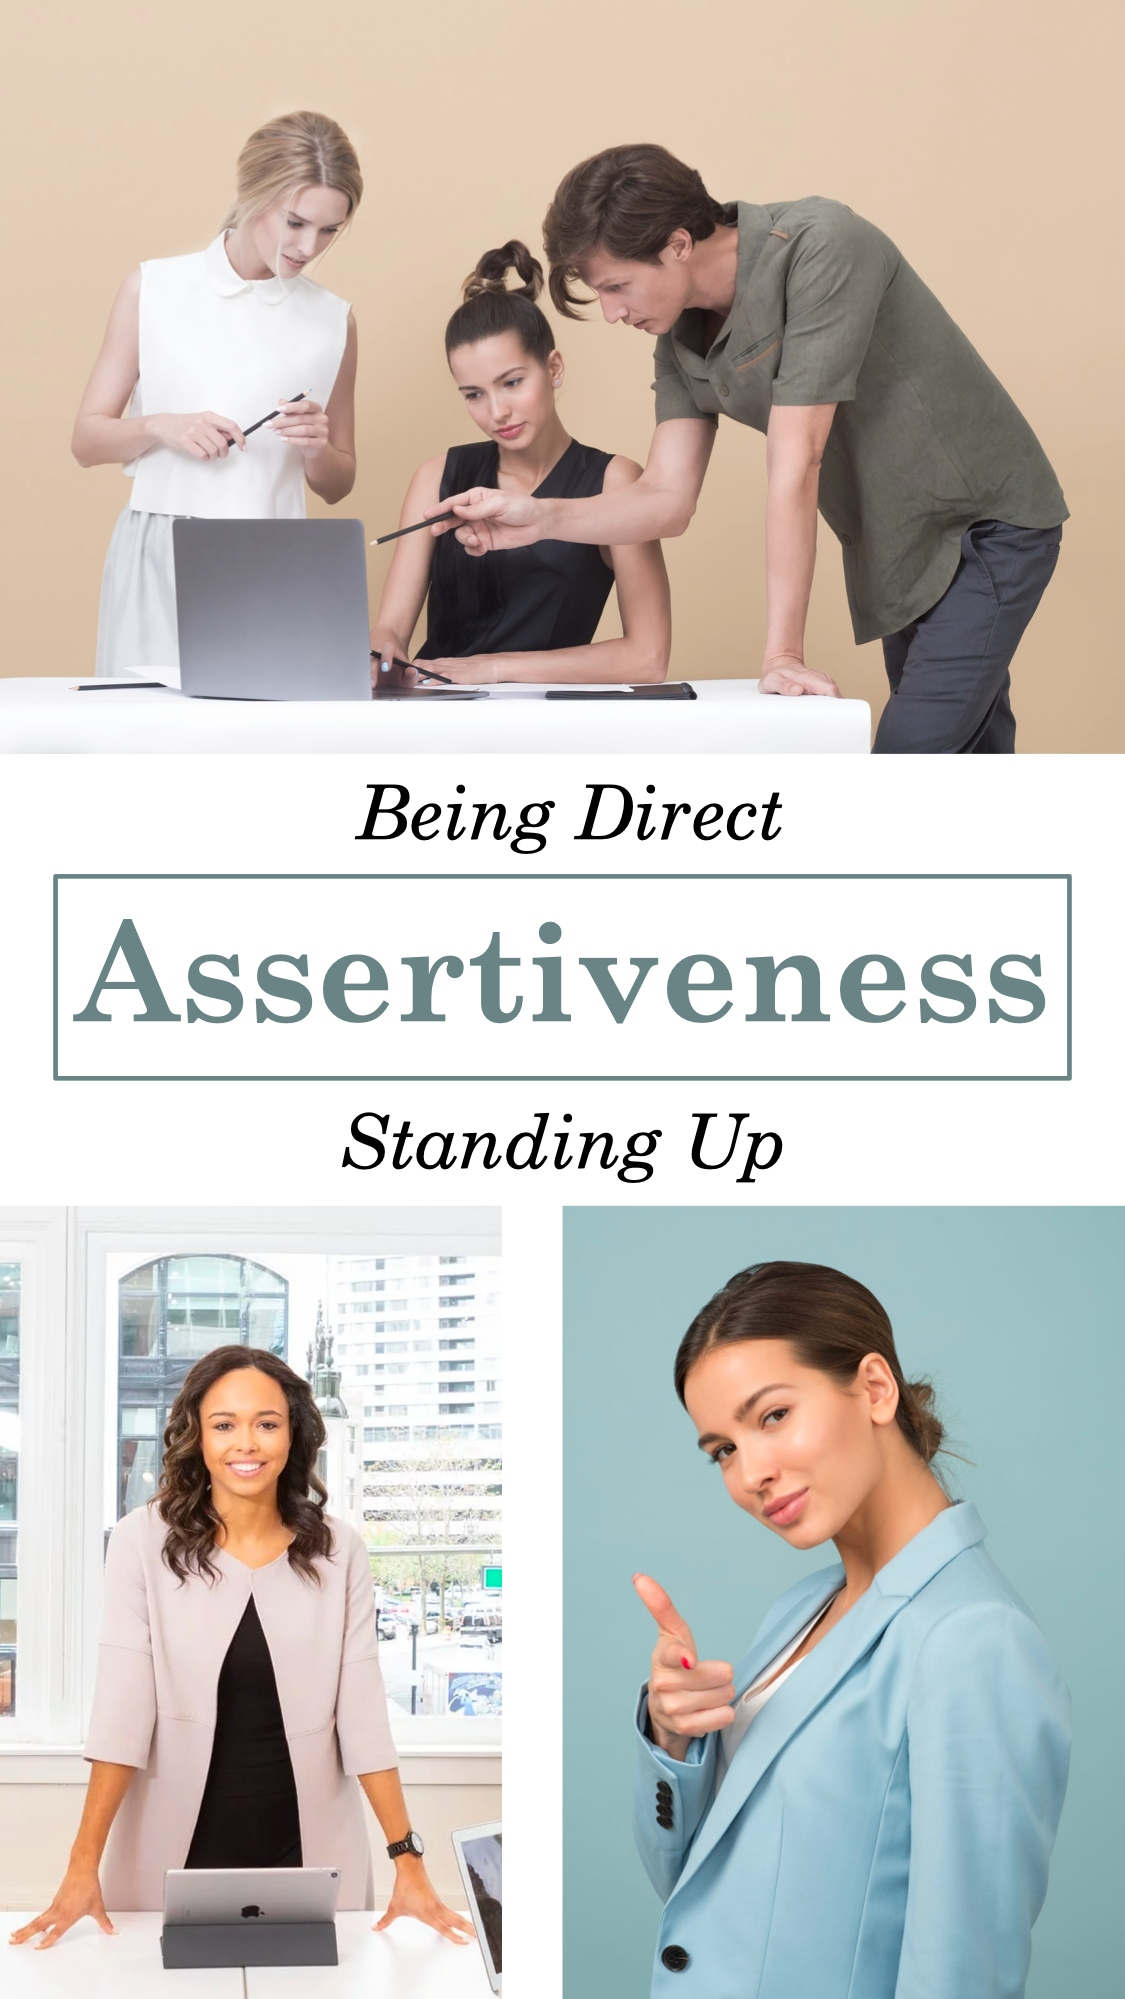 Stand Up, Be Direct, Be Assertive